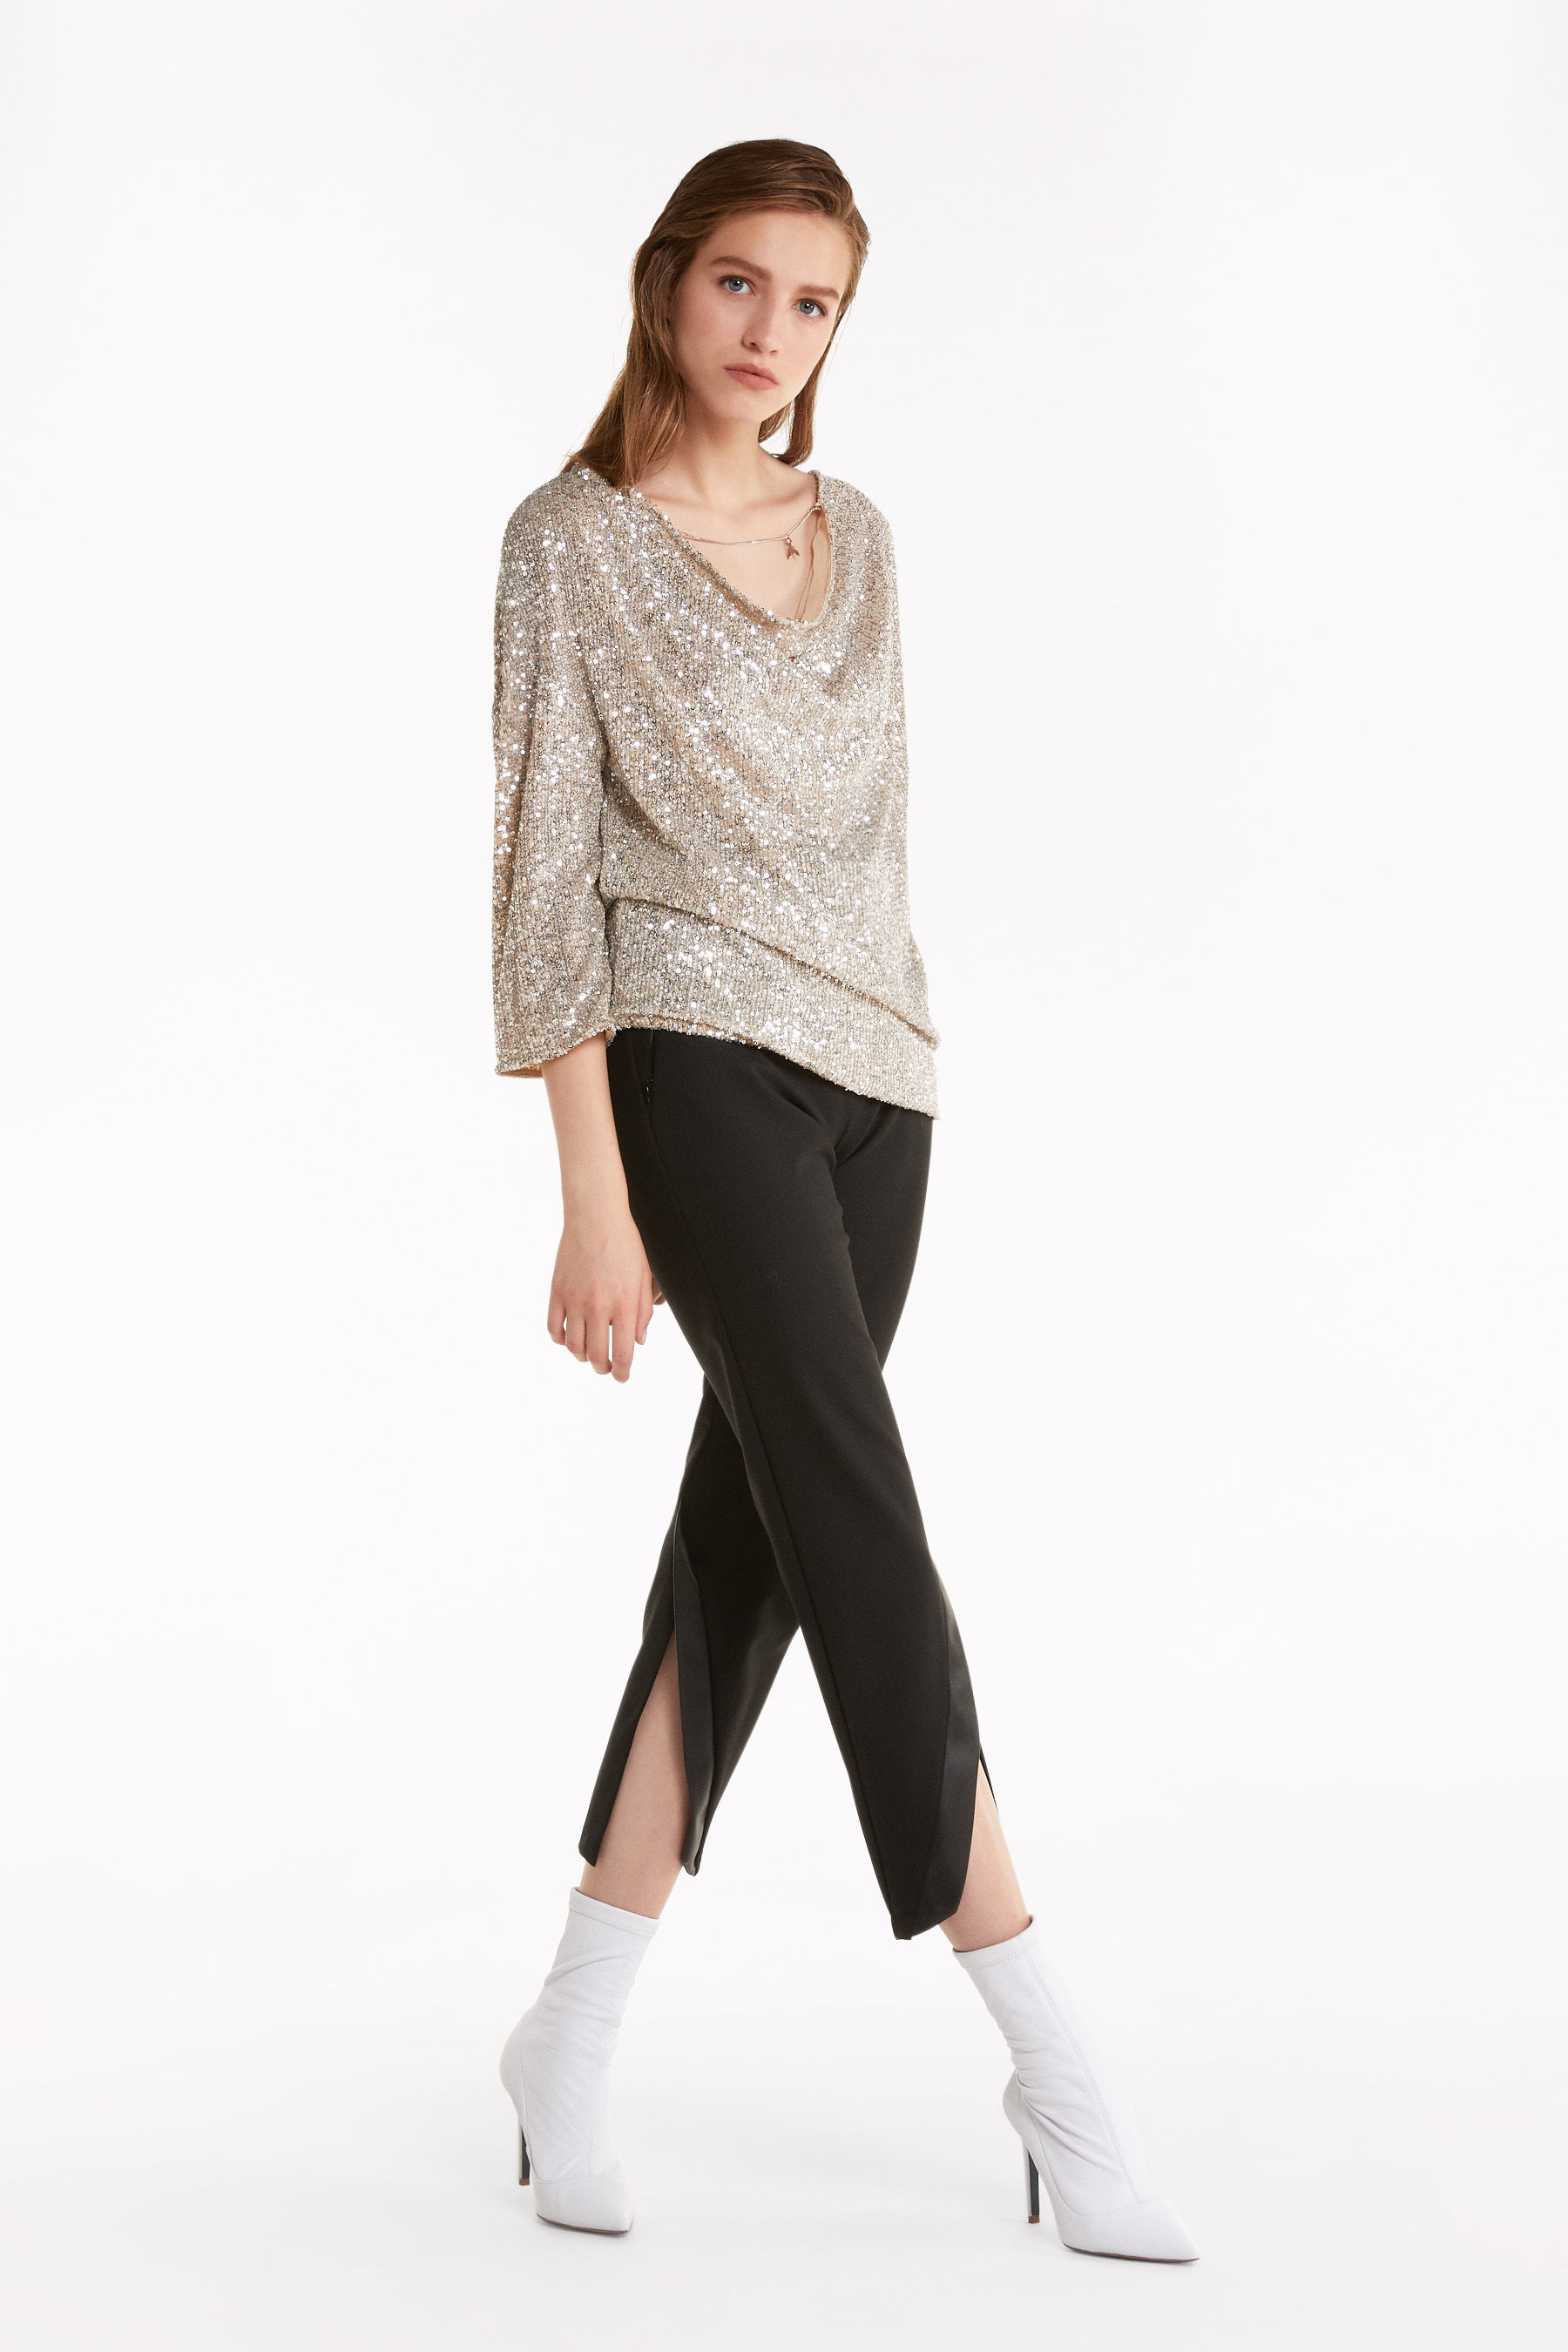 Bluse mit Allover-Pailletten